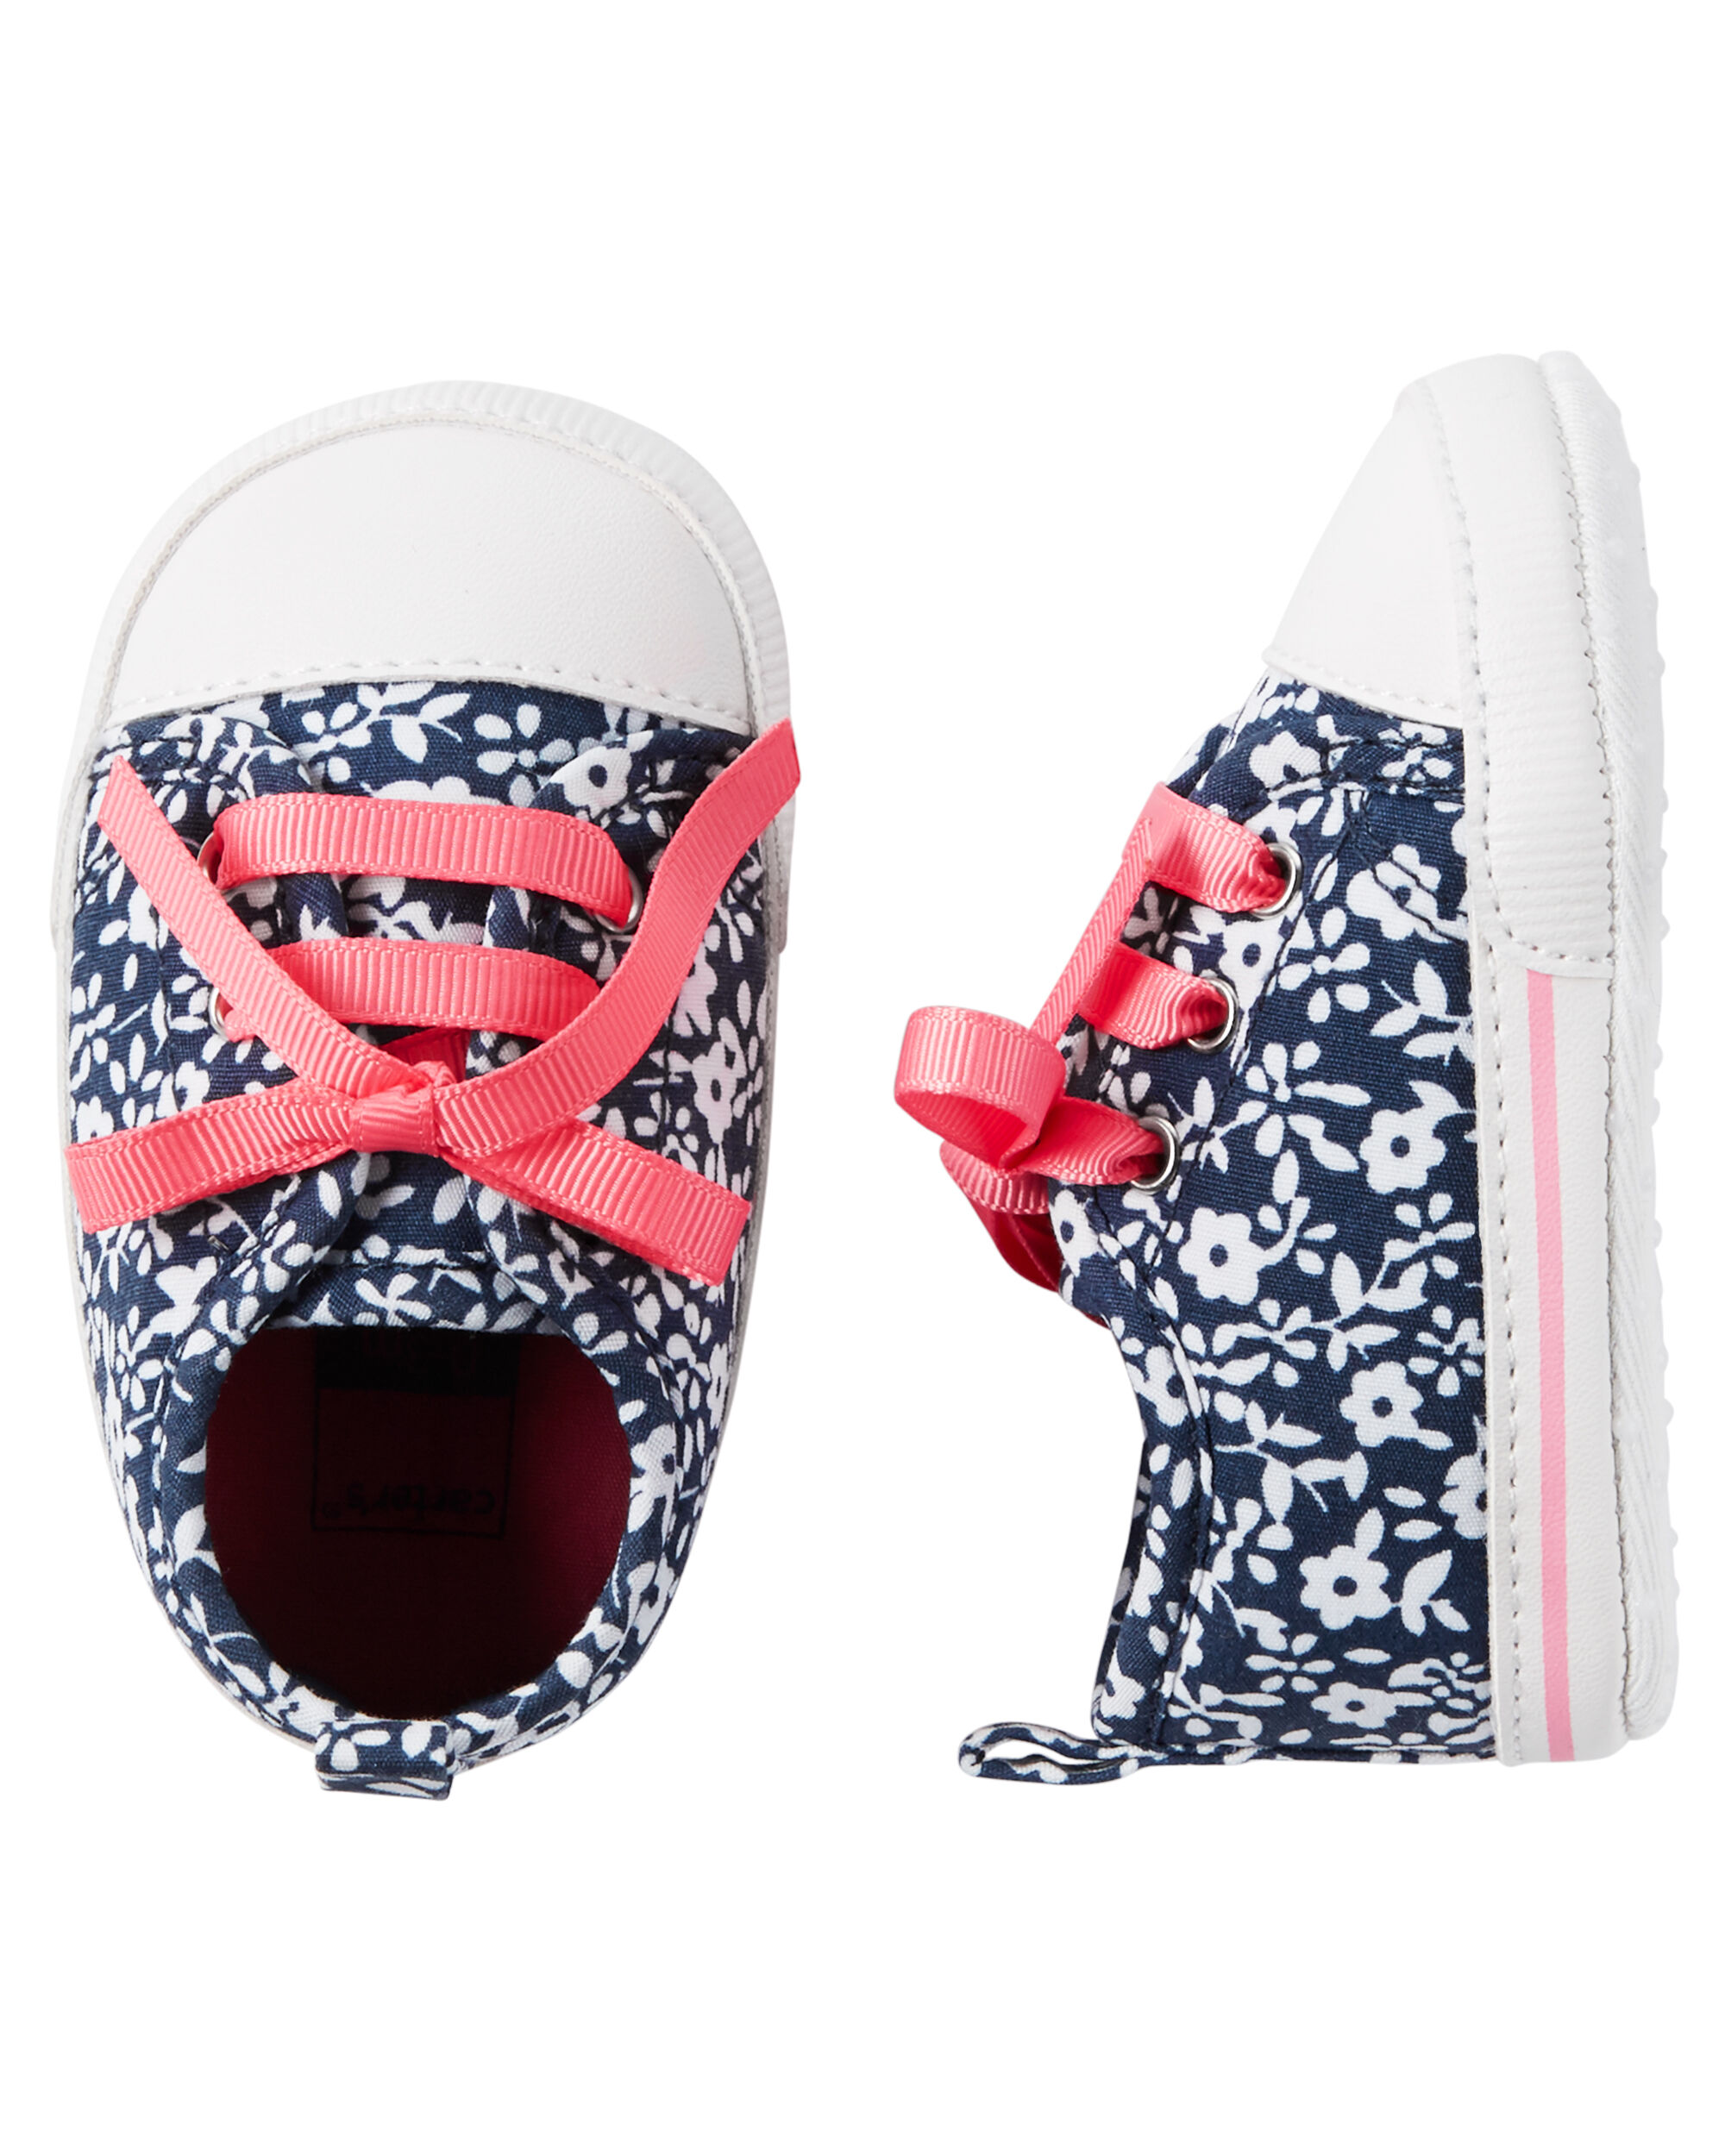 Carter's Floral Sneakers Crib Shoes